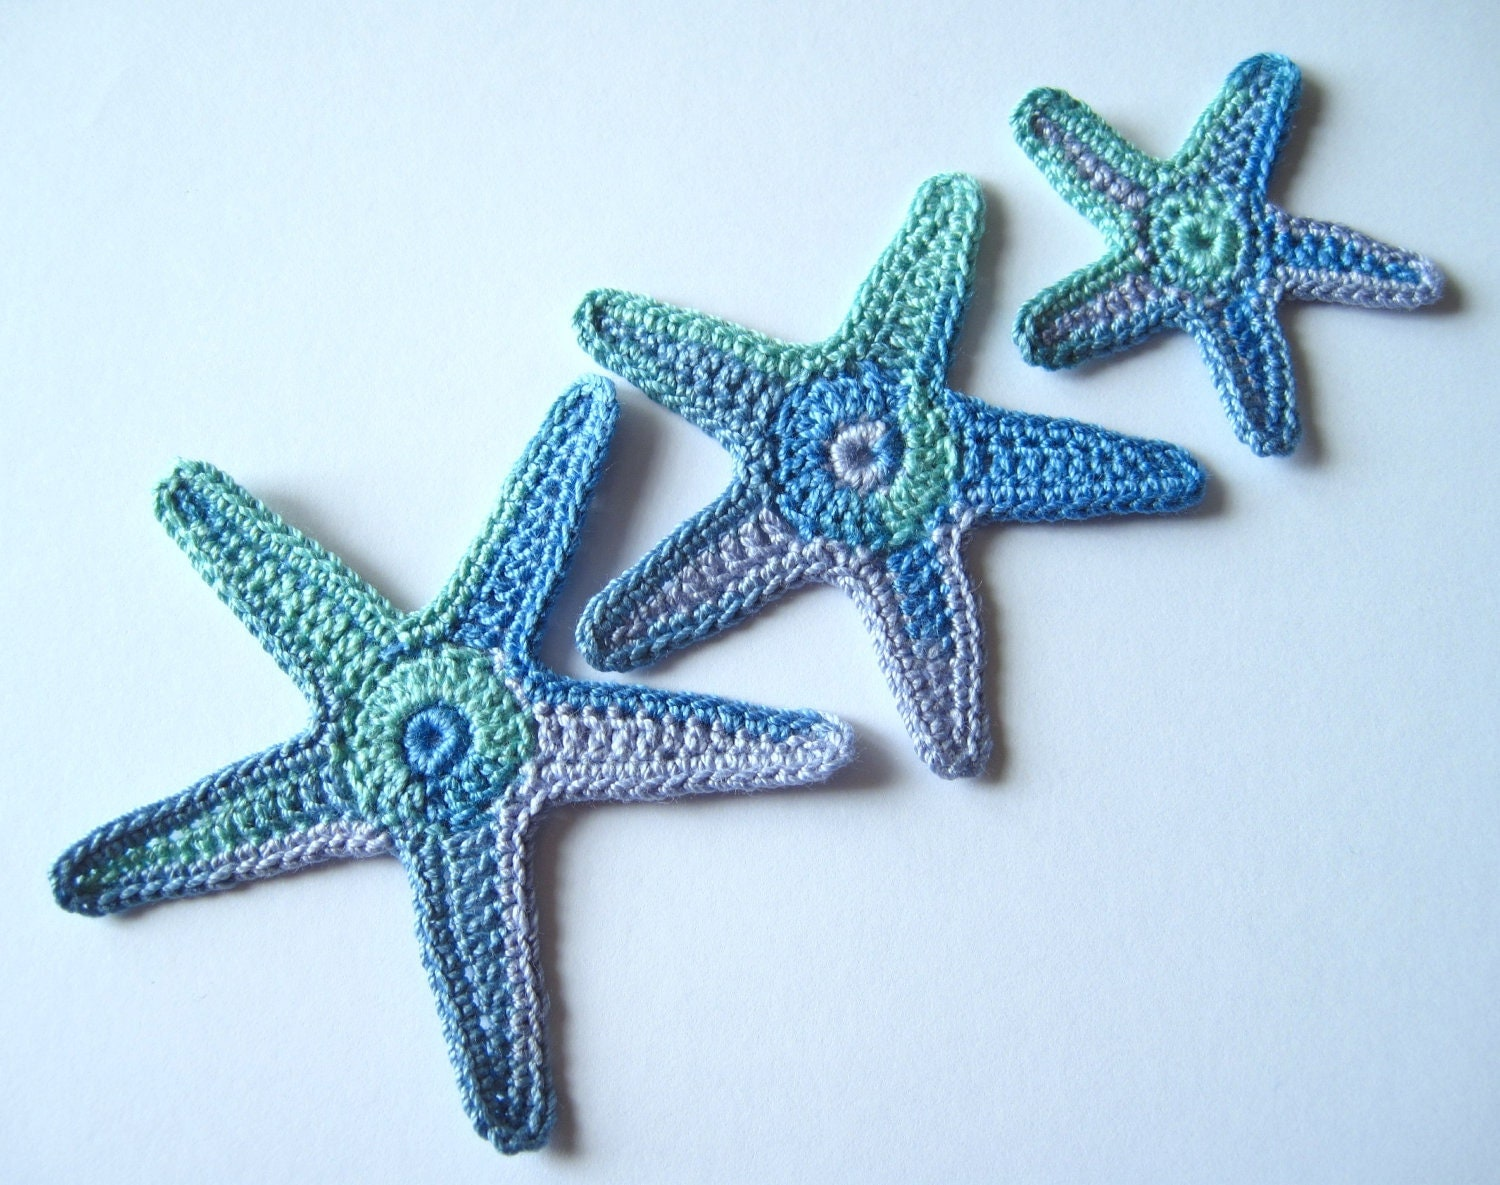 Crochet Starfish Sea Star Applique